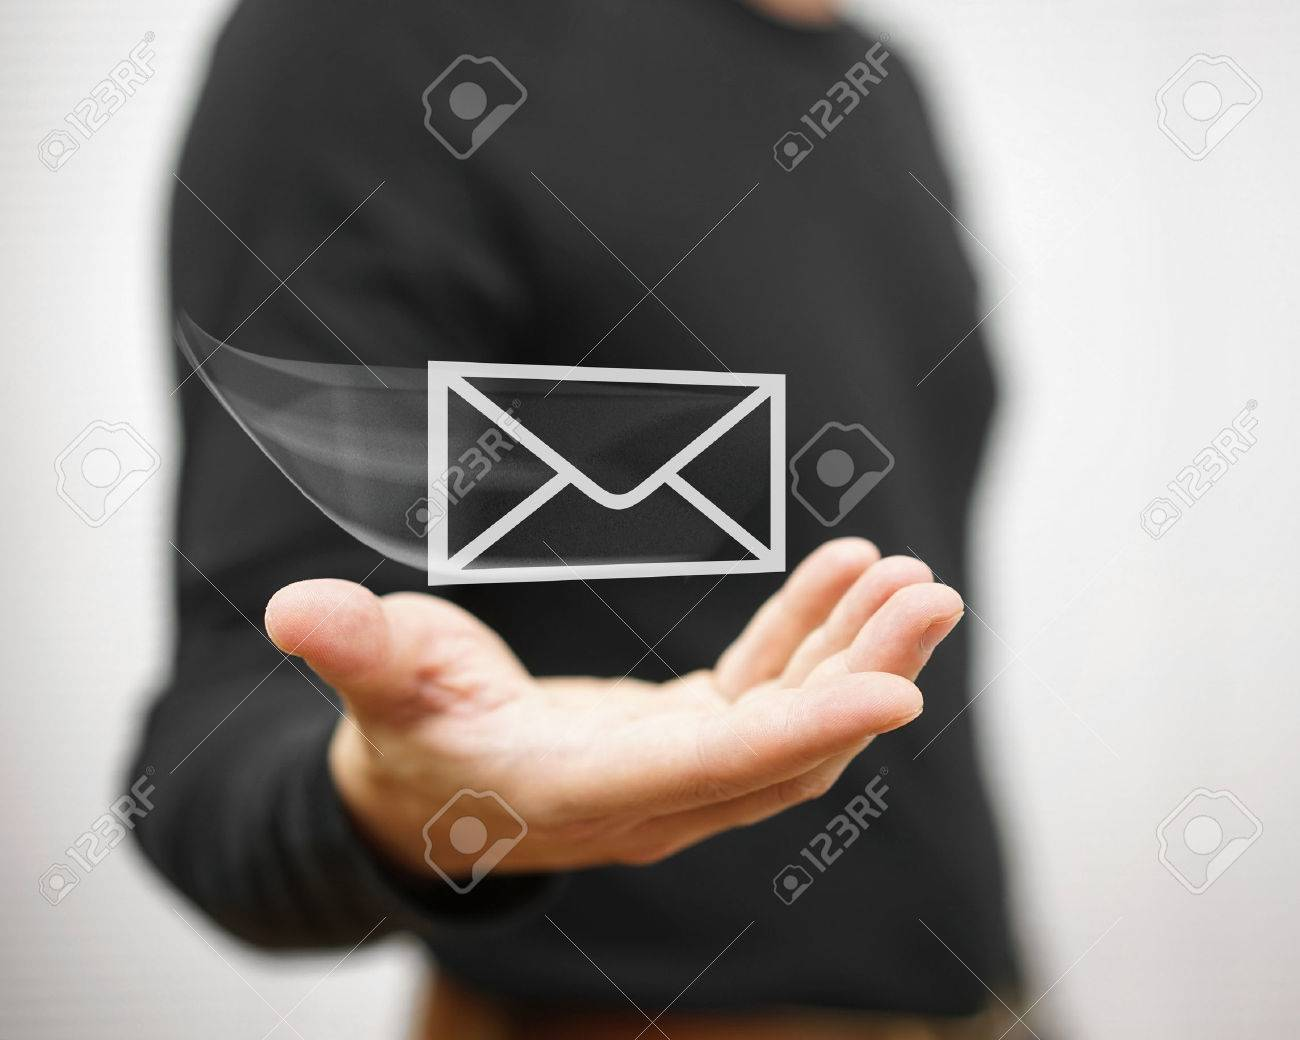 man holds a virtual postal envelope, concept of email, internet and networking Stock Photo - 47708007